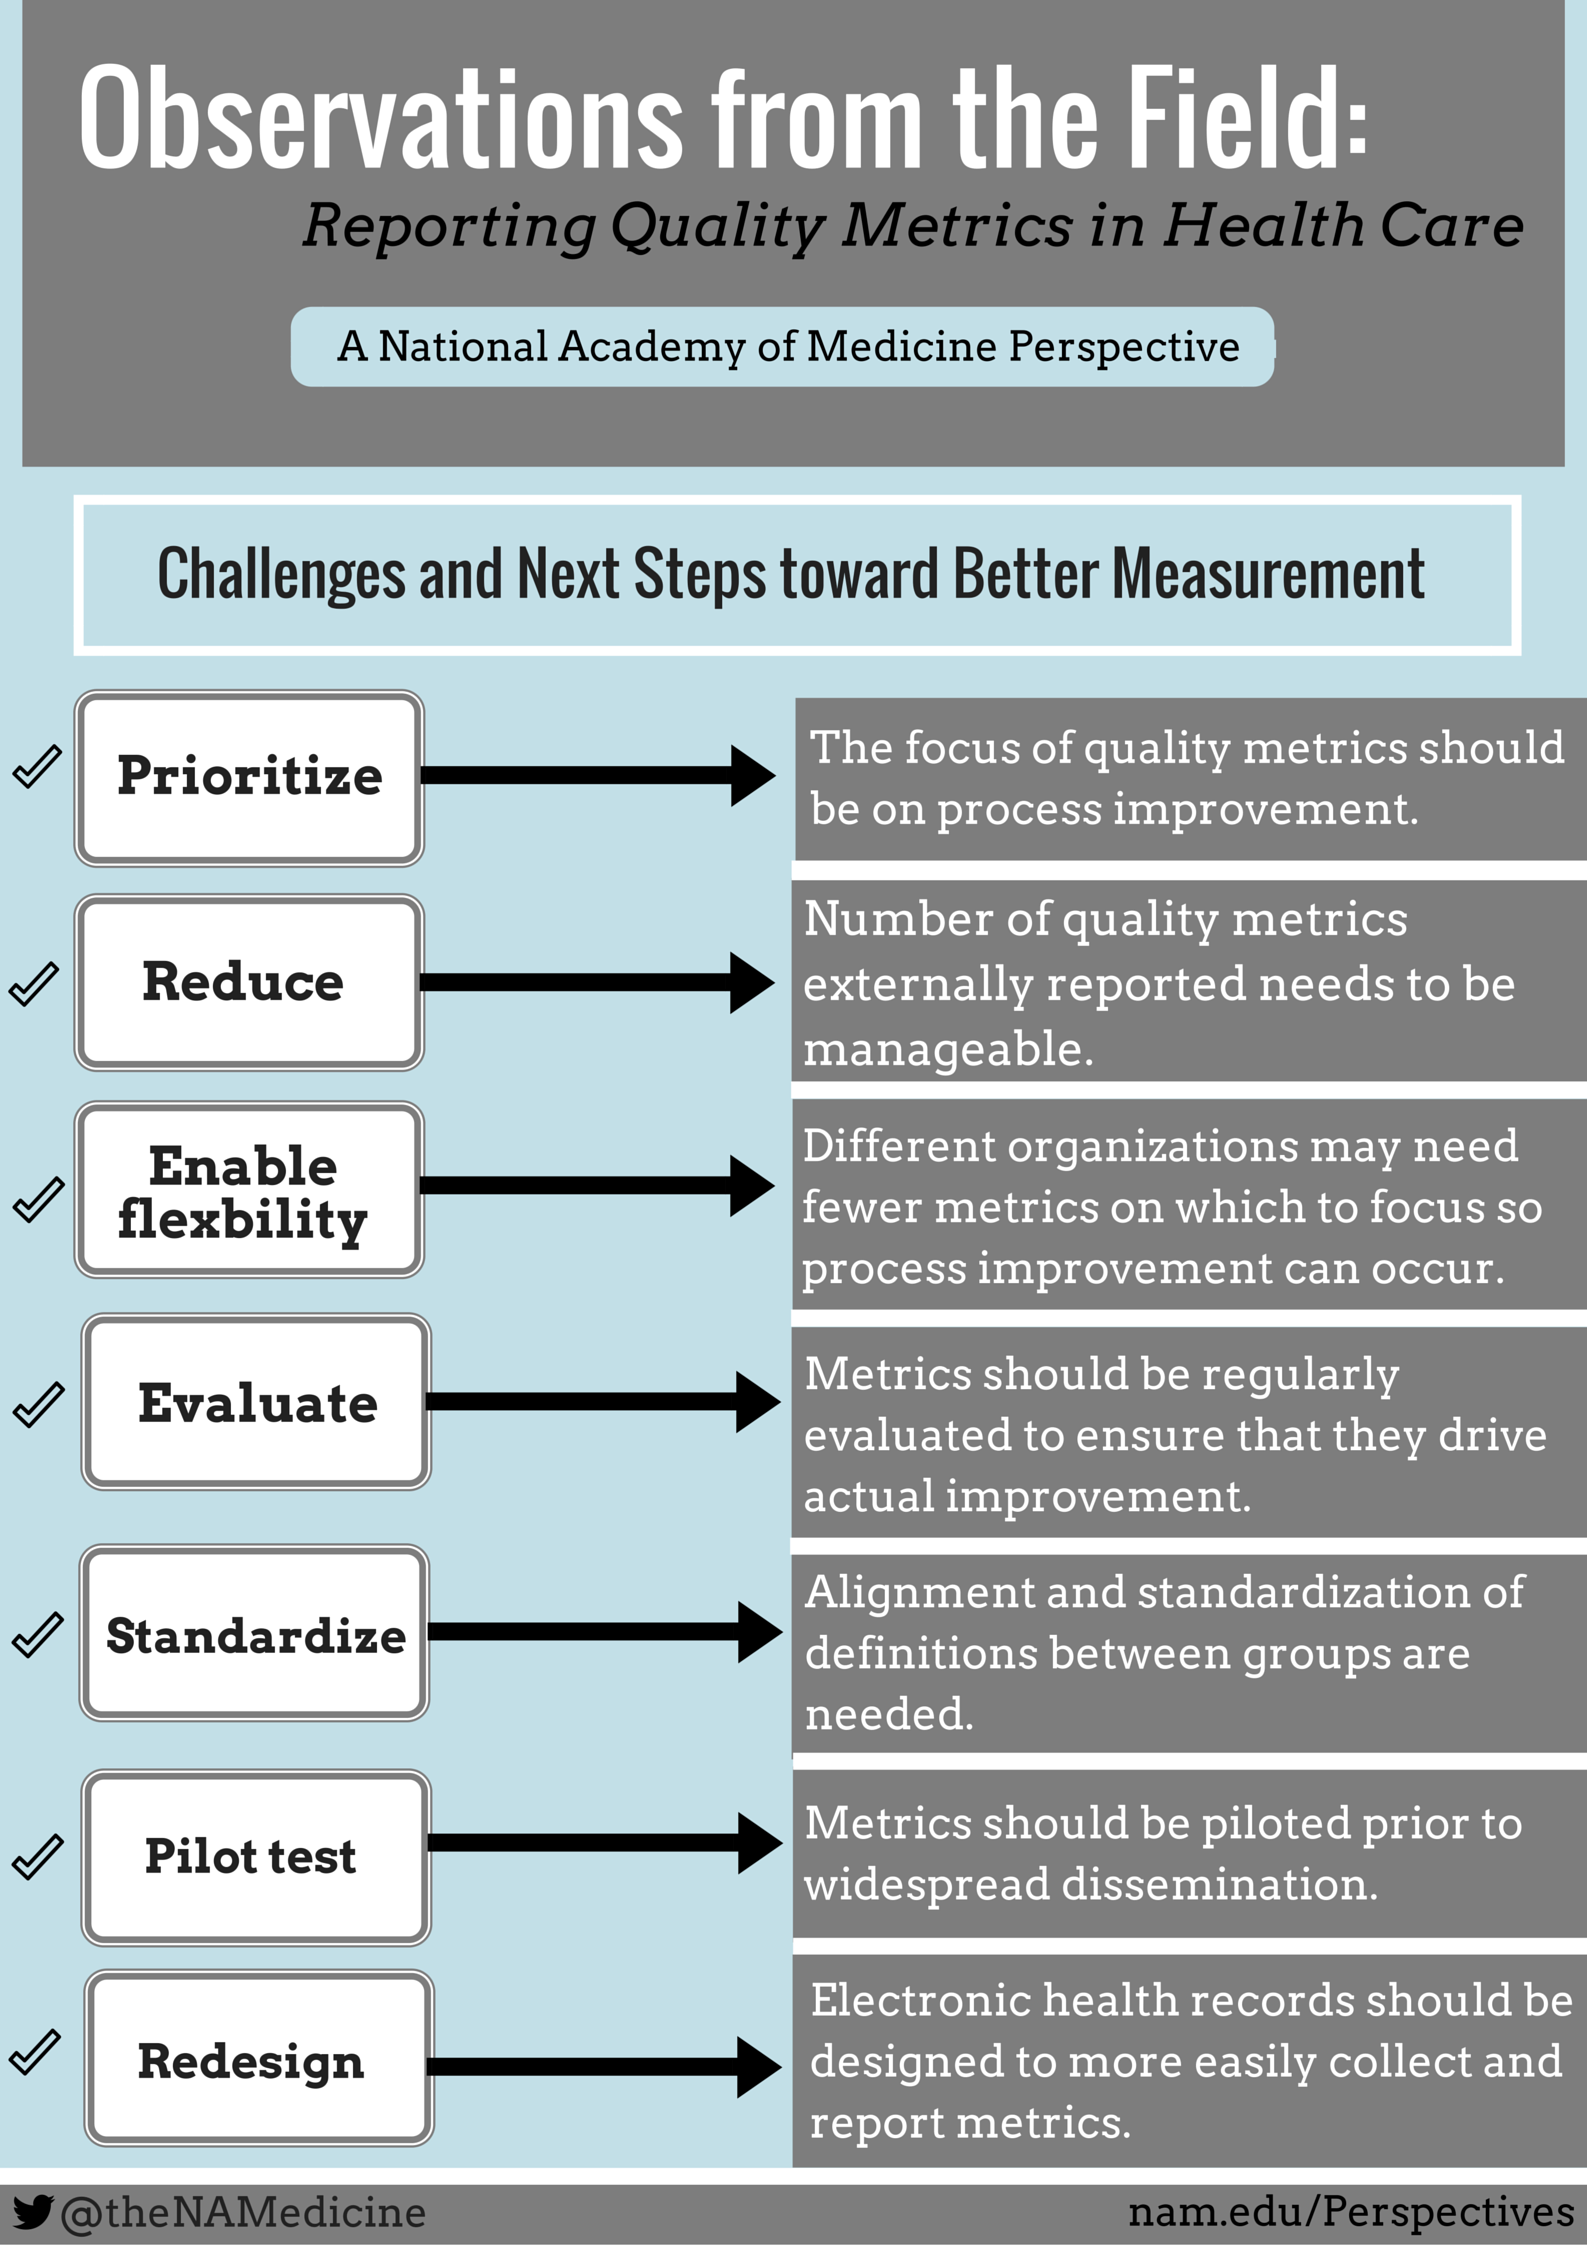 Observations from the Field: Reporting Quality Metrics in Health Care